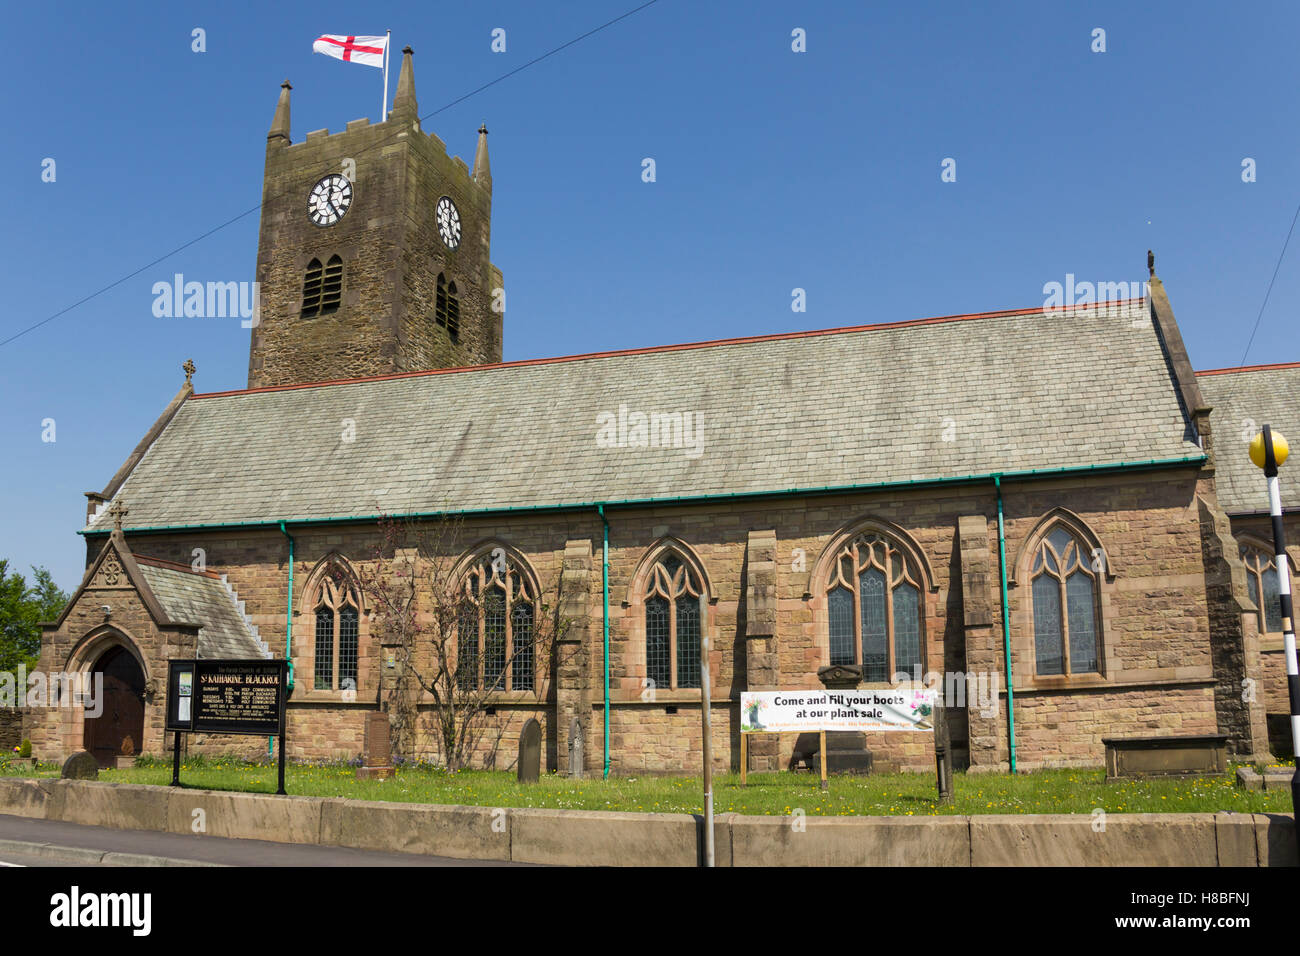 St. Katharine's church, Blackrod near Bolton, Lancashire with a banner advertising the forthcoming plant sale. - Stock Image